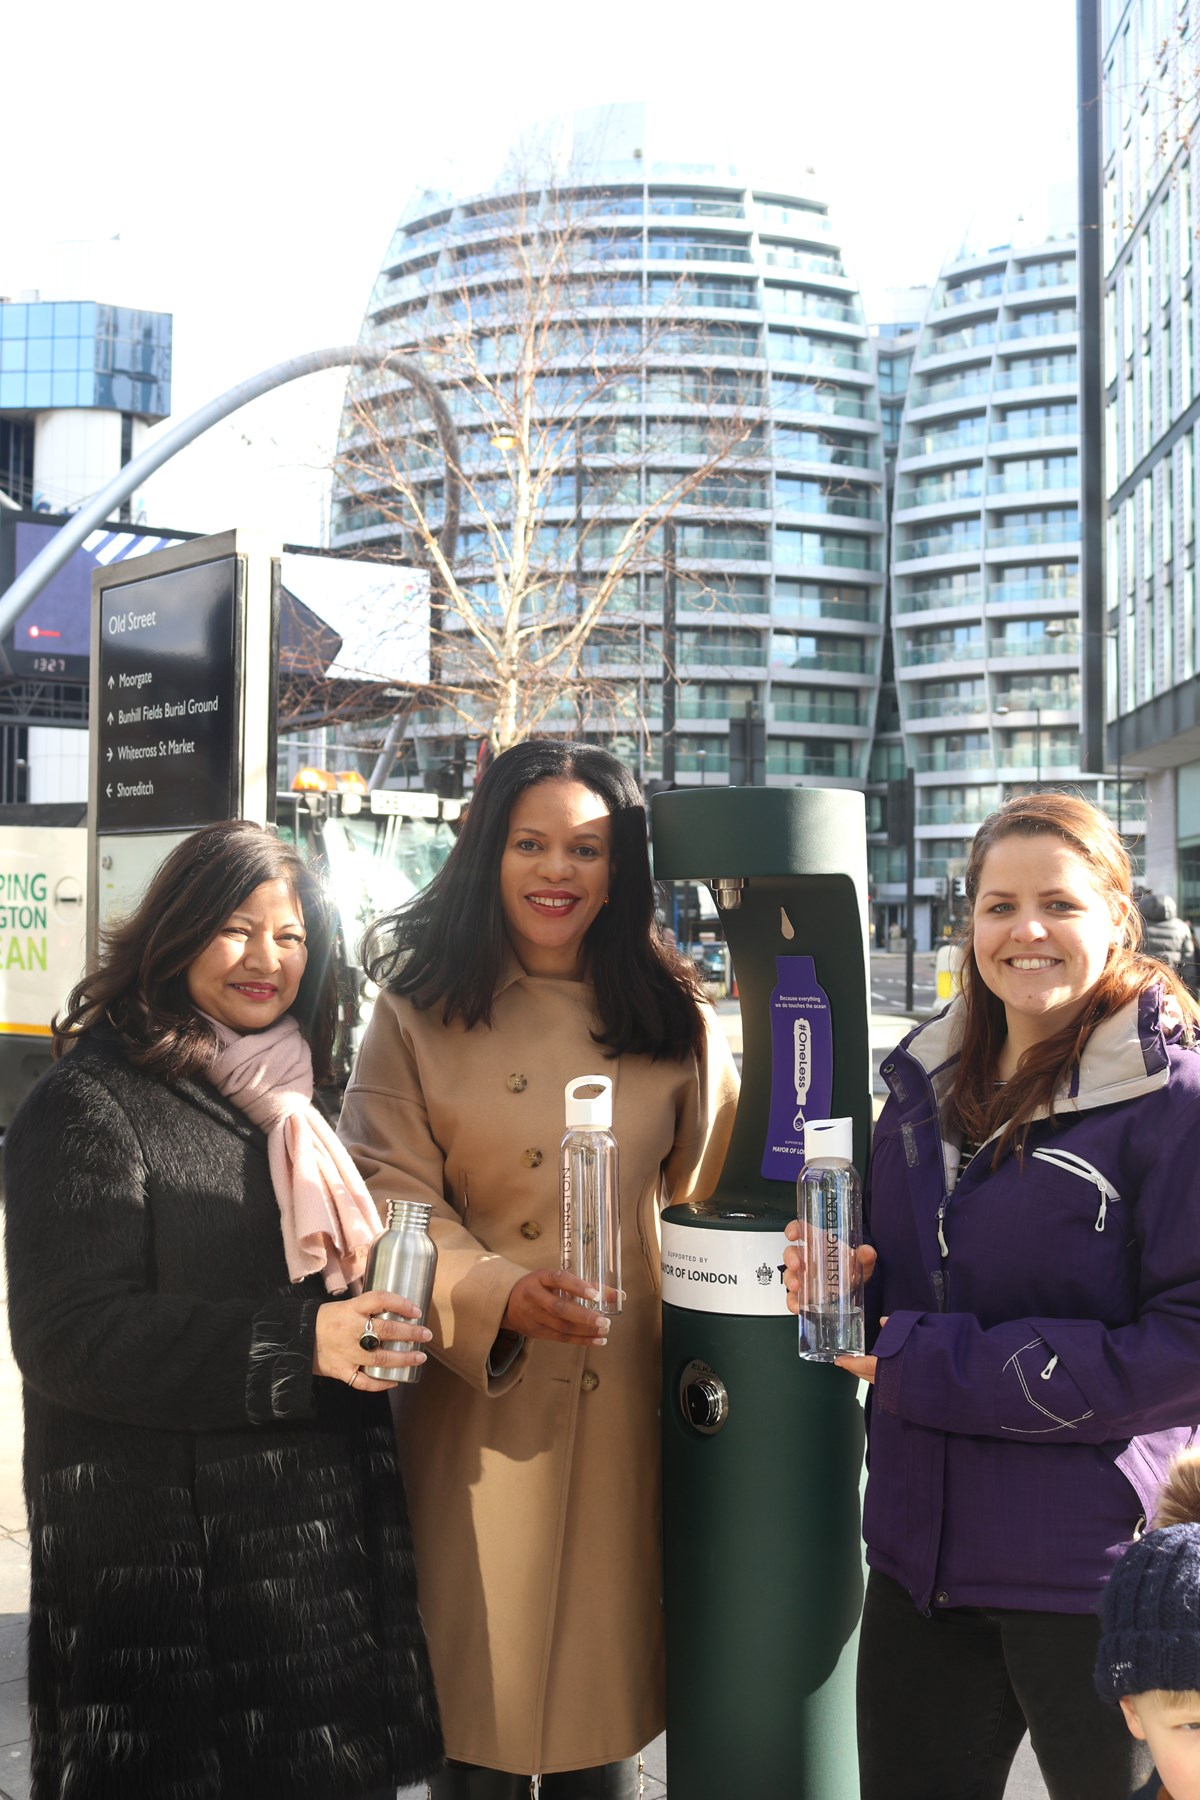 Launch of new Old Street drinking fountain with (L-R) London Deputy Mayor for Environment and Energy Shirley Rodrigues; Cllr Claudia Webbe, Islington Council's executive member for environment and transport; and one of the first members of the public to use the new drinking fountain